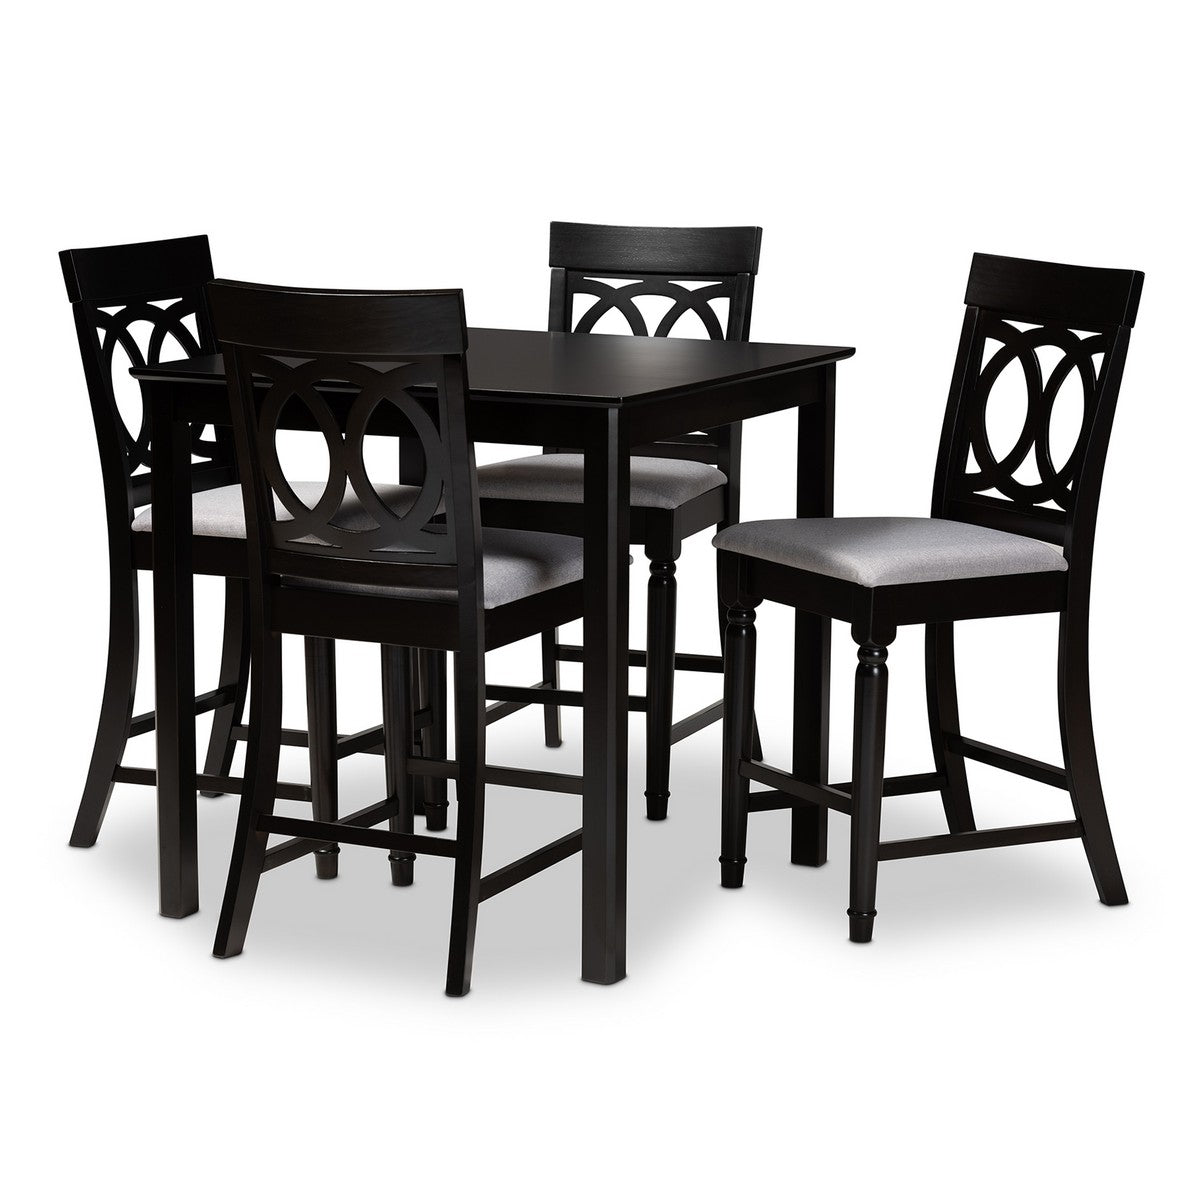 Baxton Studio Verina Modern and Contemporary Grey Fabric Upholstered Espresso Brown Finished 5-Piece Wood Pub Set Baxton Studio-Pub Sets-Minimal And Modern - 1